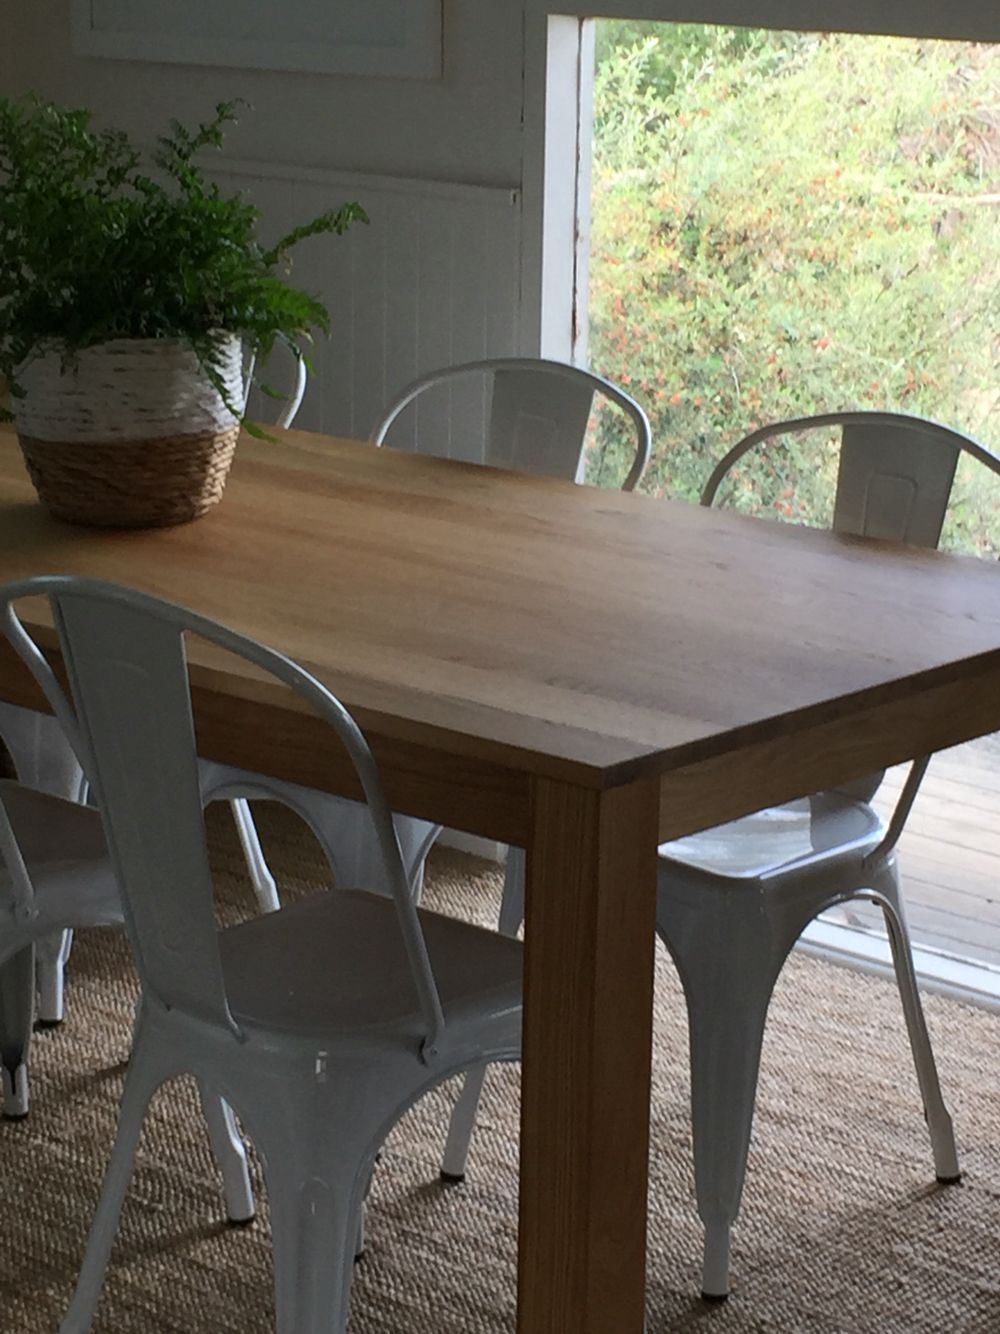 Ikea Sjuhult With Kmart Chairs Glass Dining Room Sets Ikea